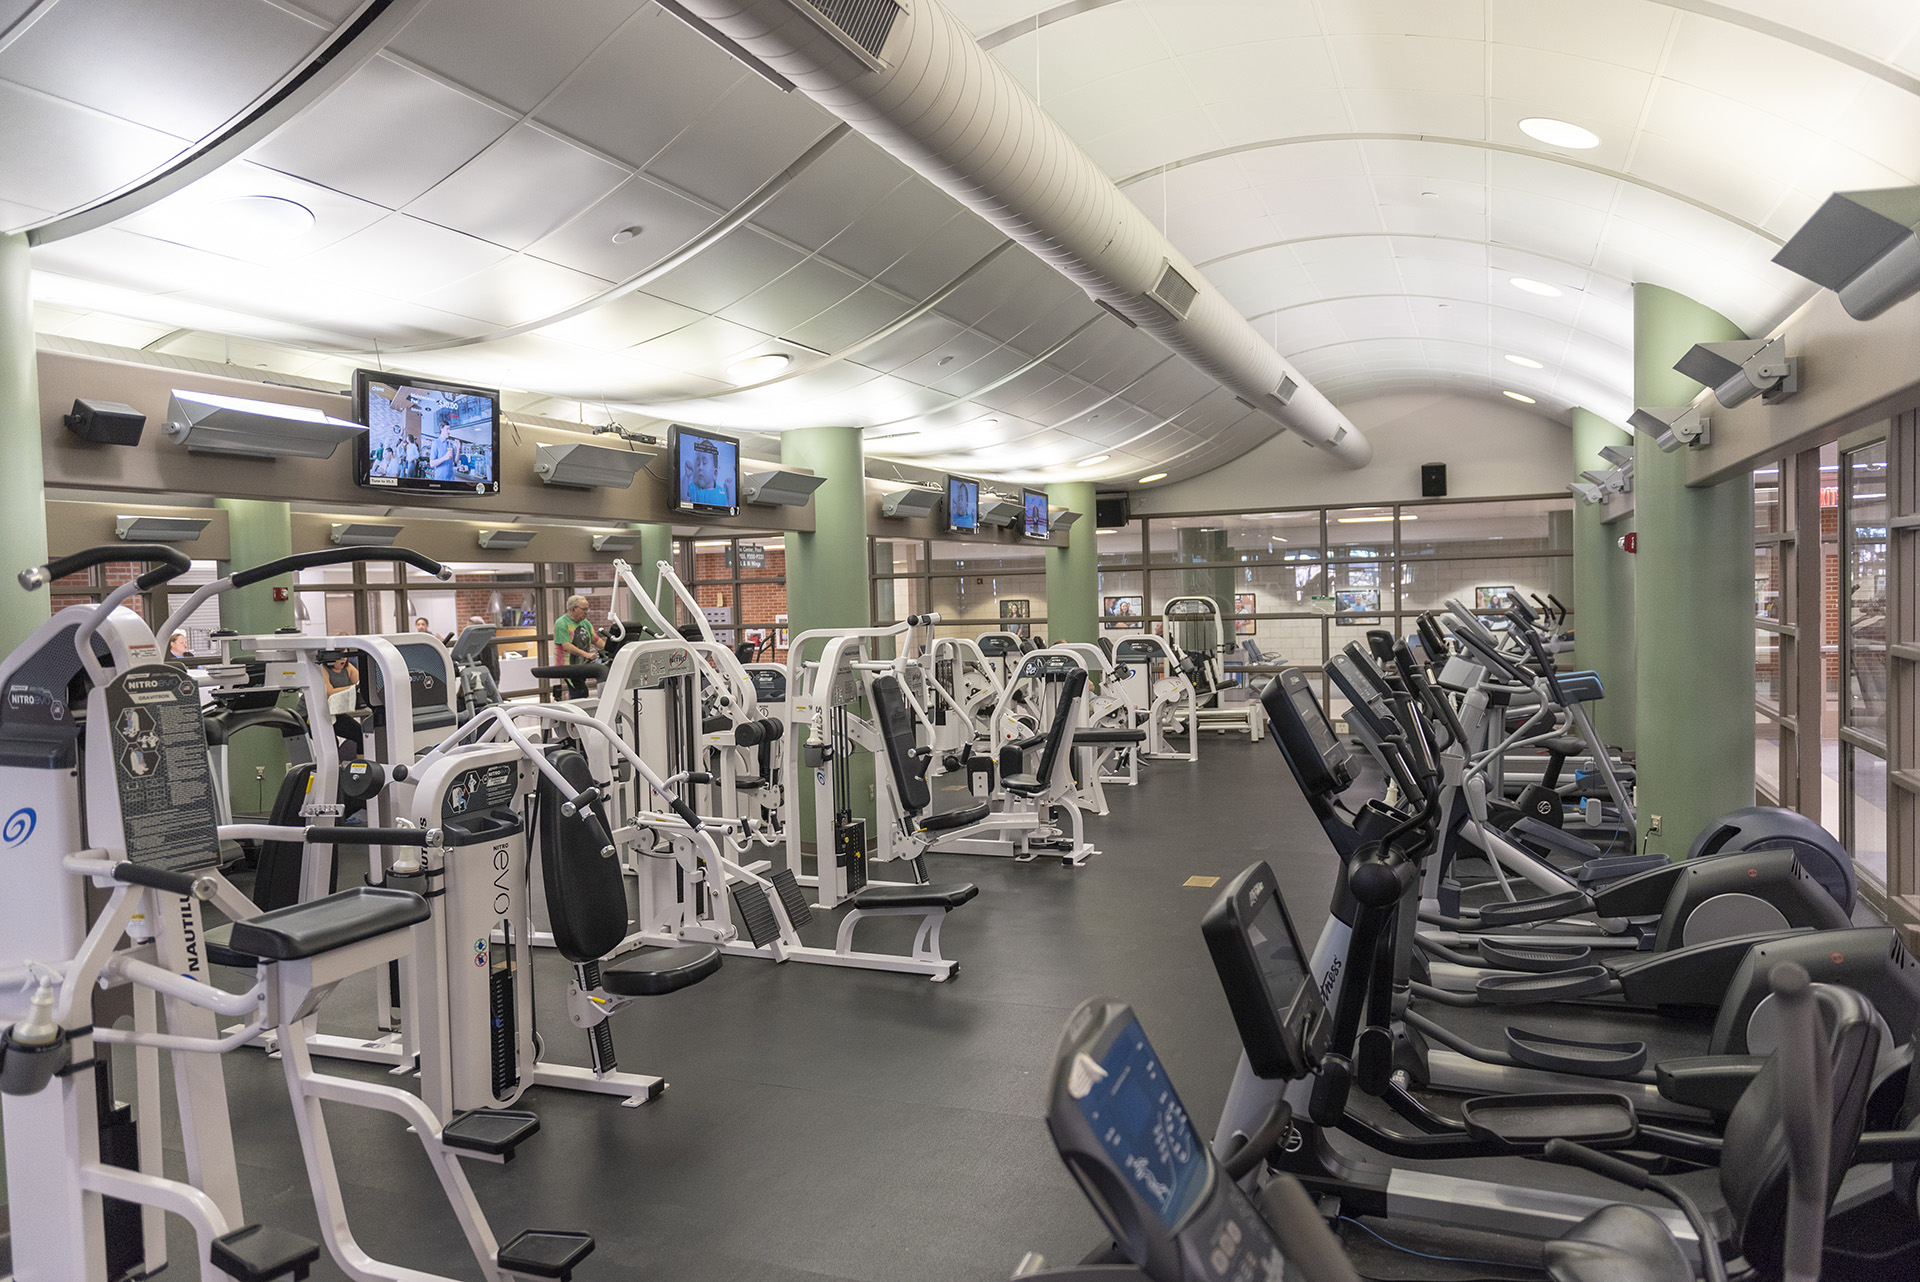 The cardio room has treadmills, ellipticals, weight machines and more.